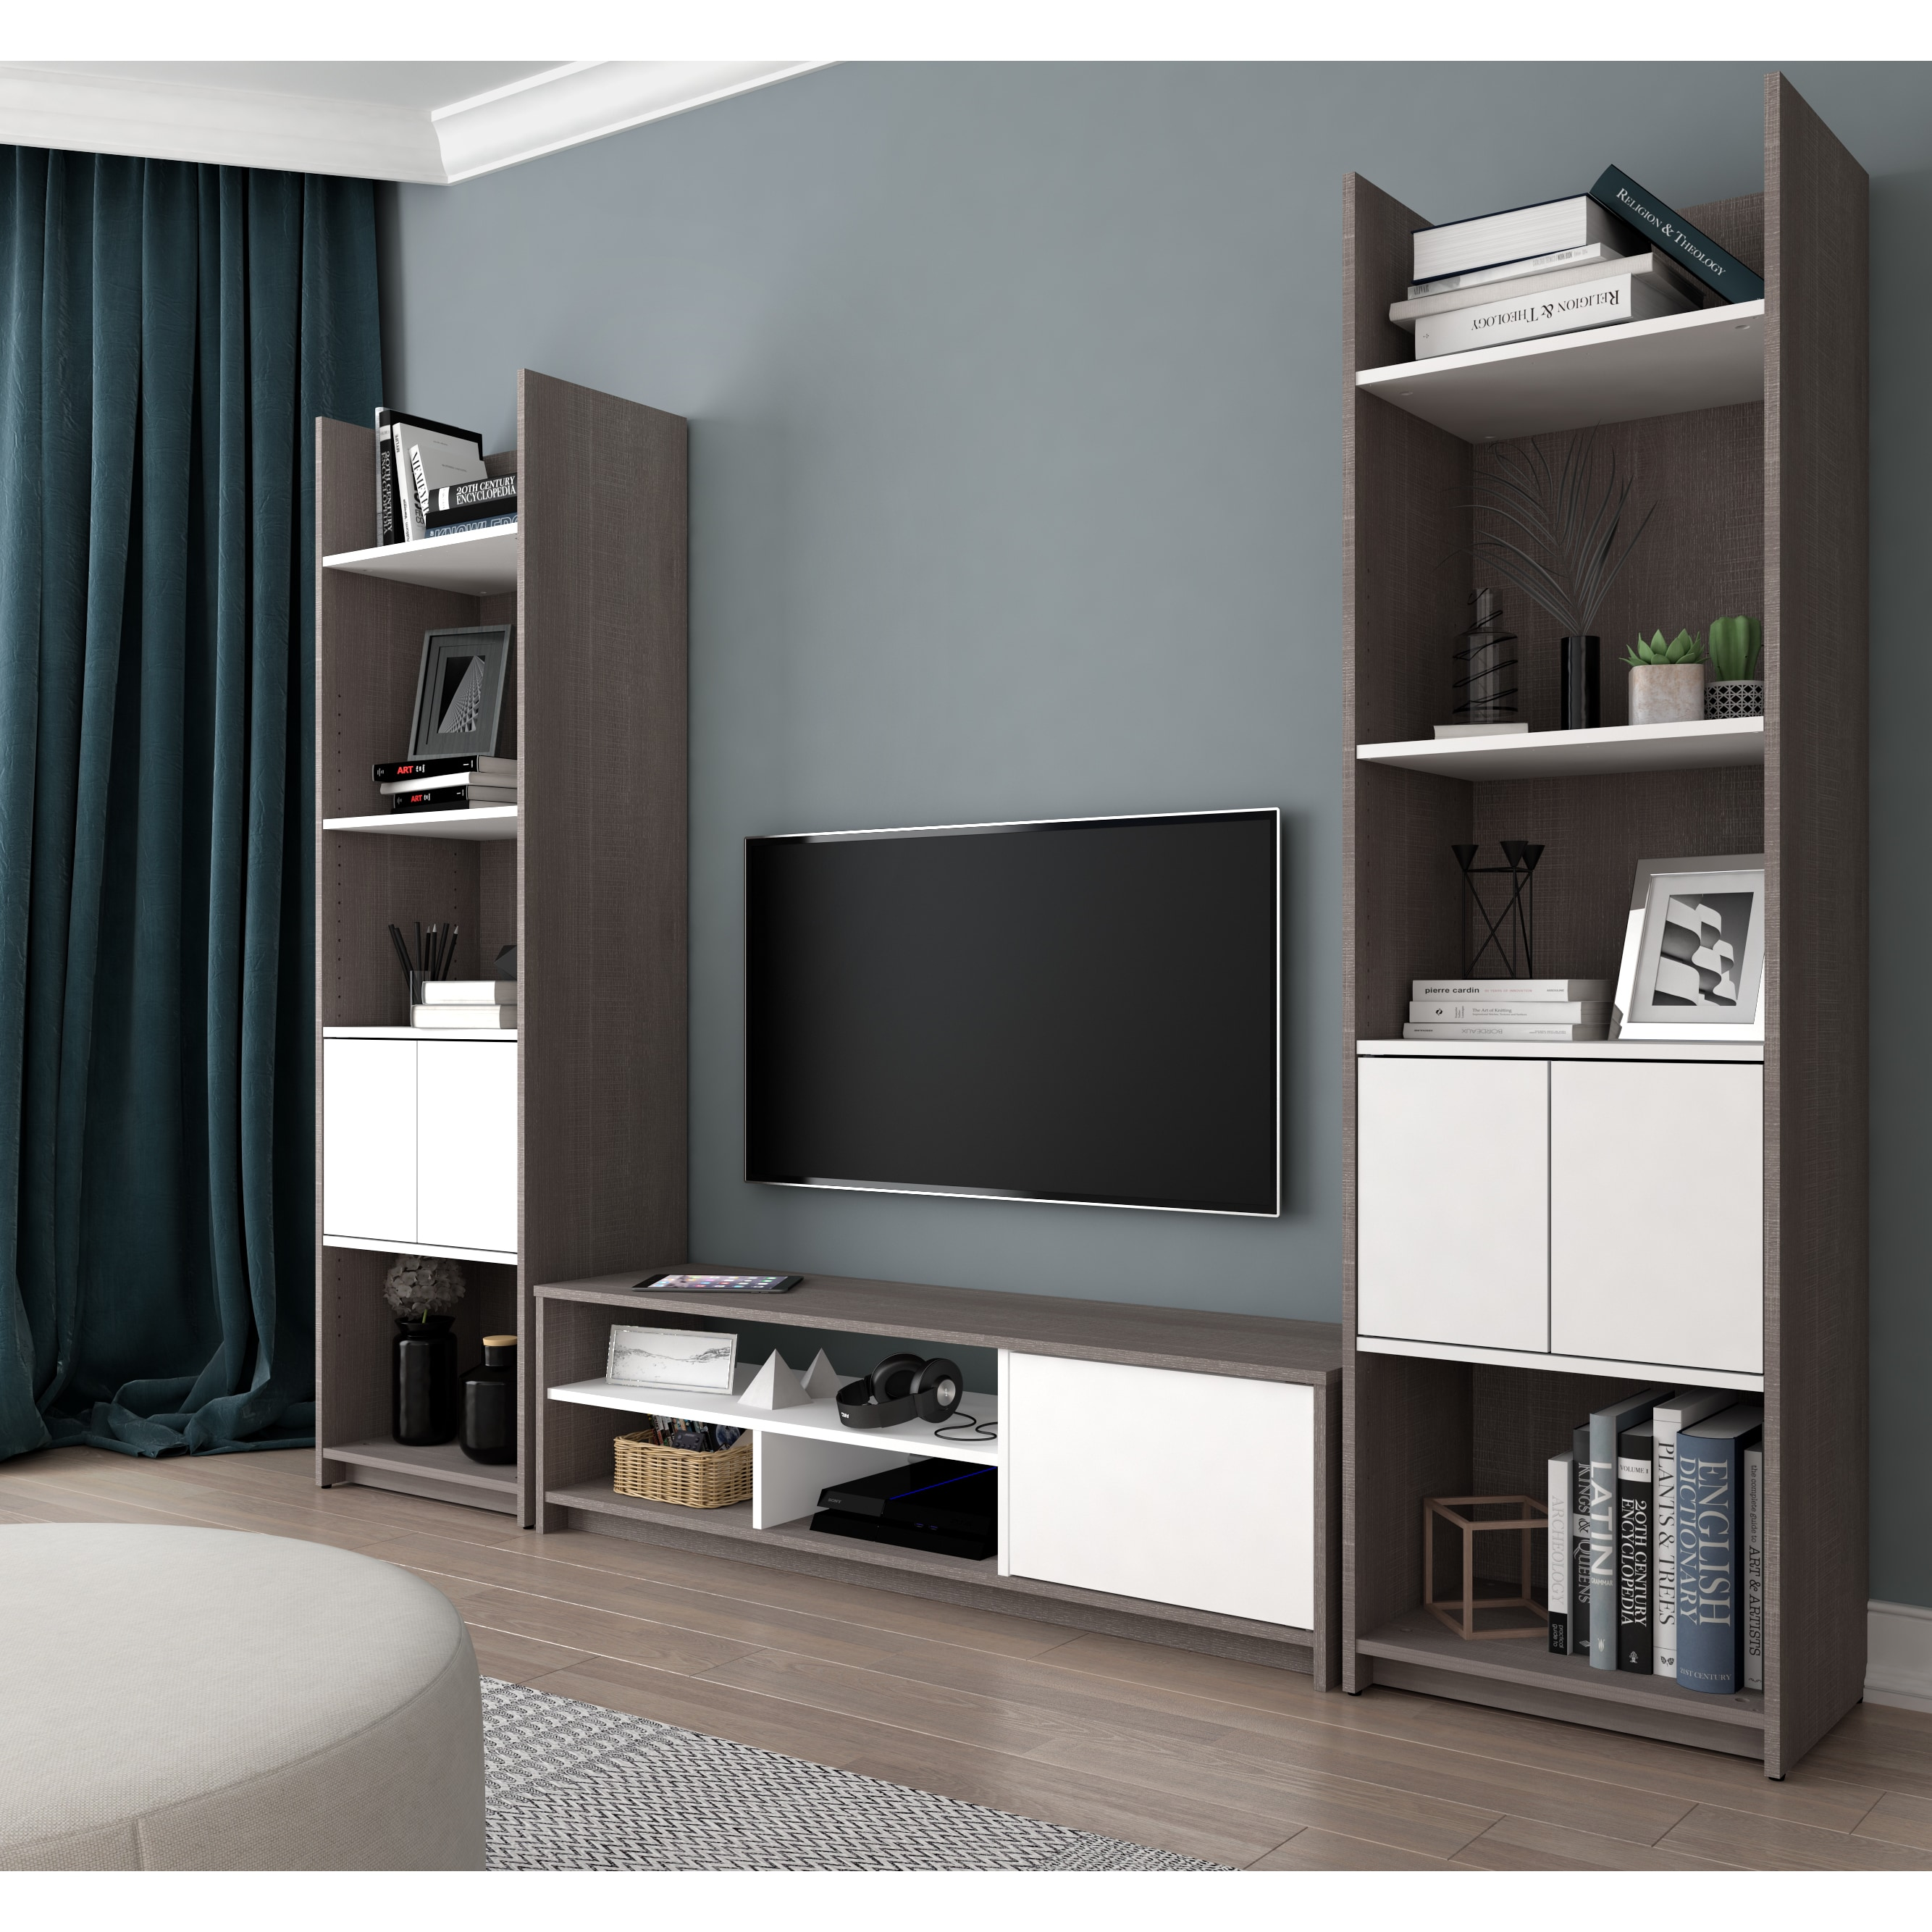 Bestar Small Space 3 Piece TV Stand and 2 Storage Towers Set Free